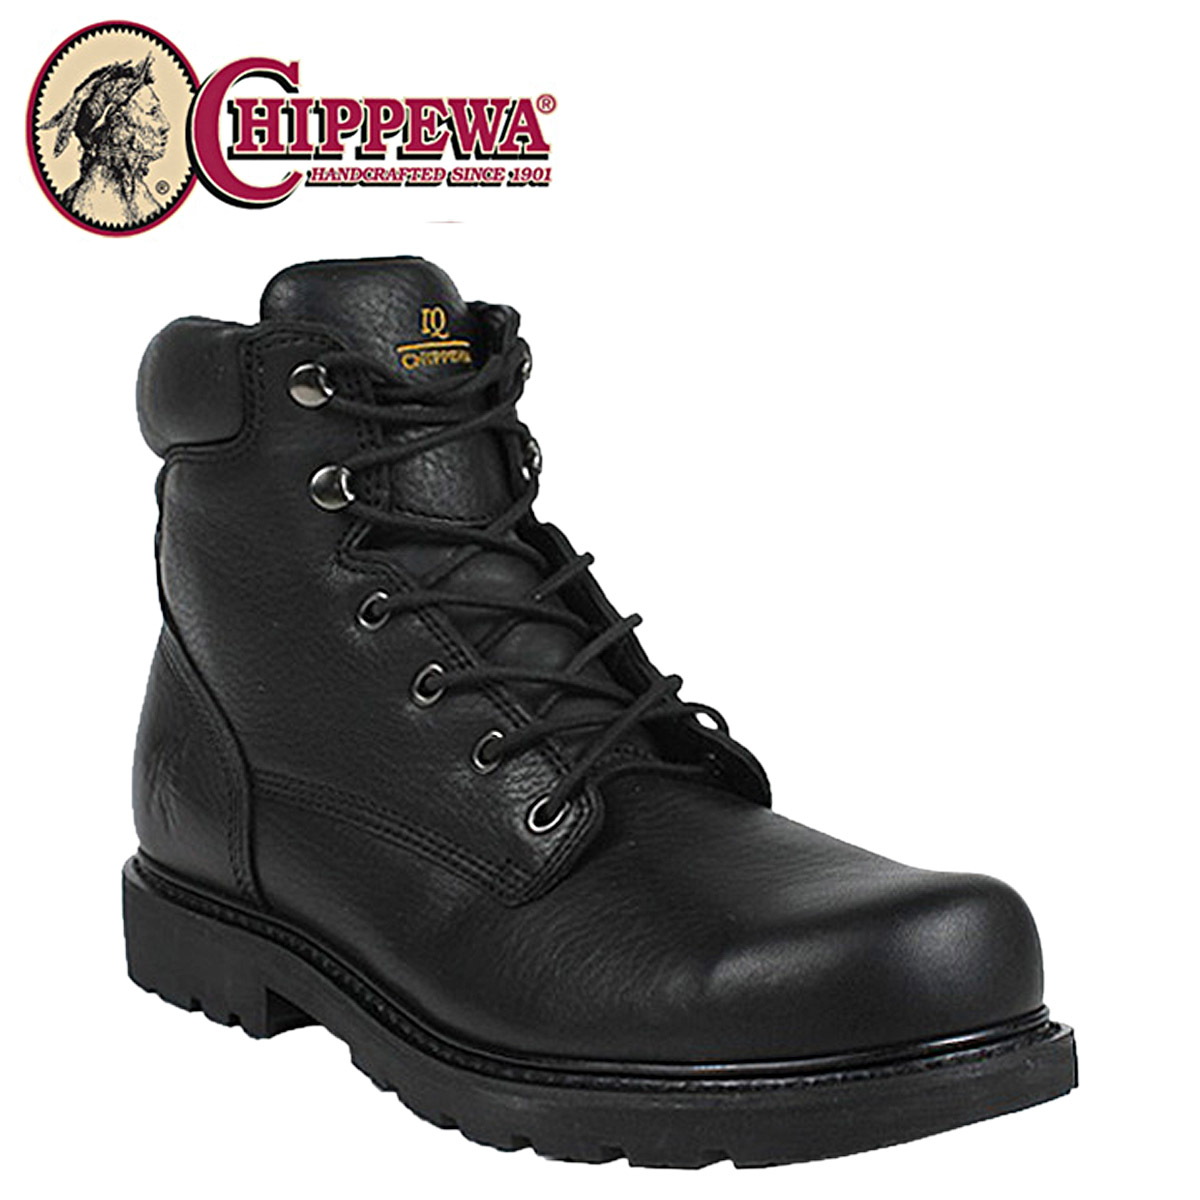 a9a2ec009ff Chippewa CHIPPEWA work boots Bay Apache 55121 6INCH BLACK STEEL TOE IQ  BOOTS M wise leather 6 inch black steel to boots mens